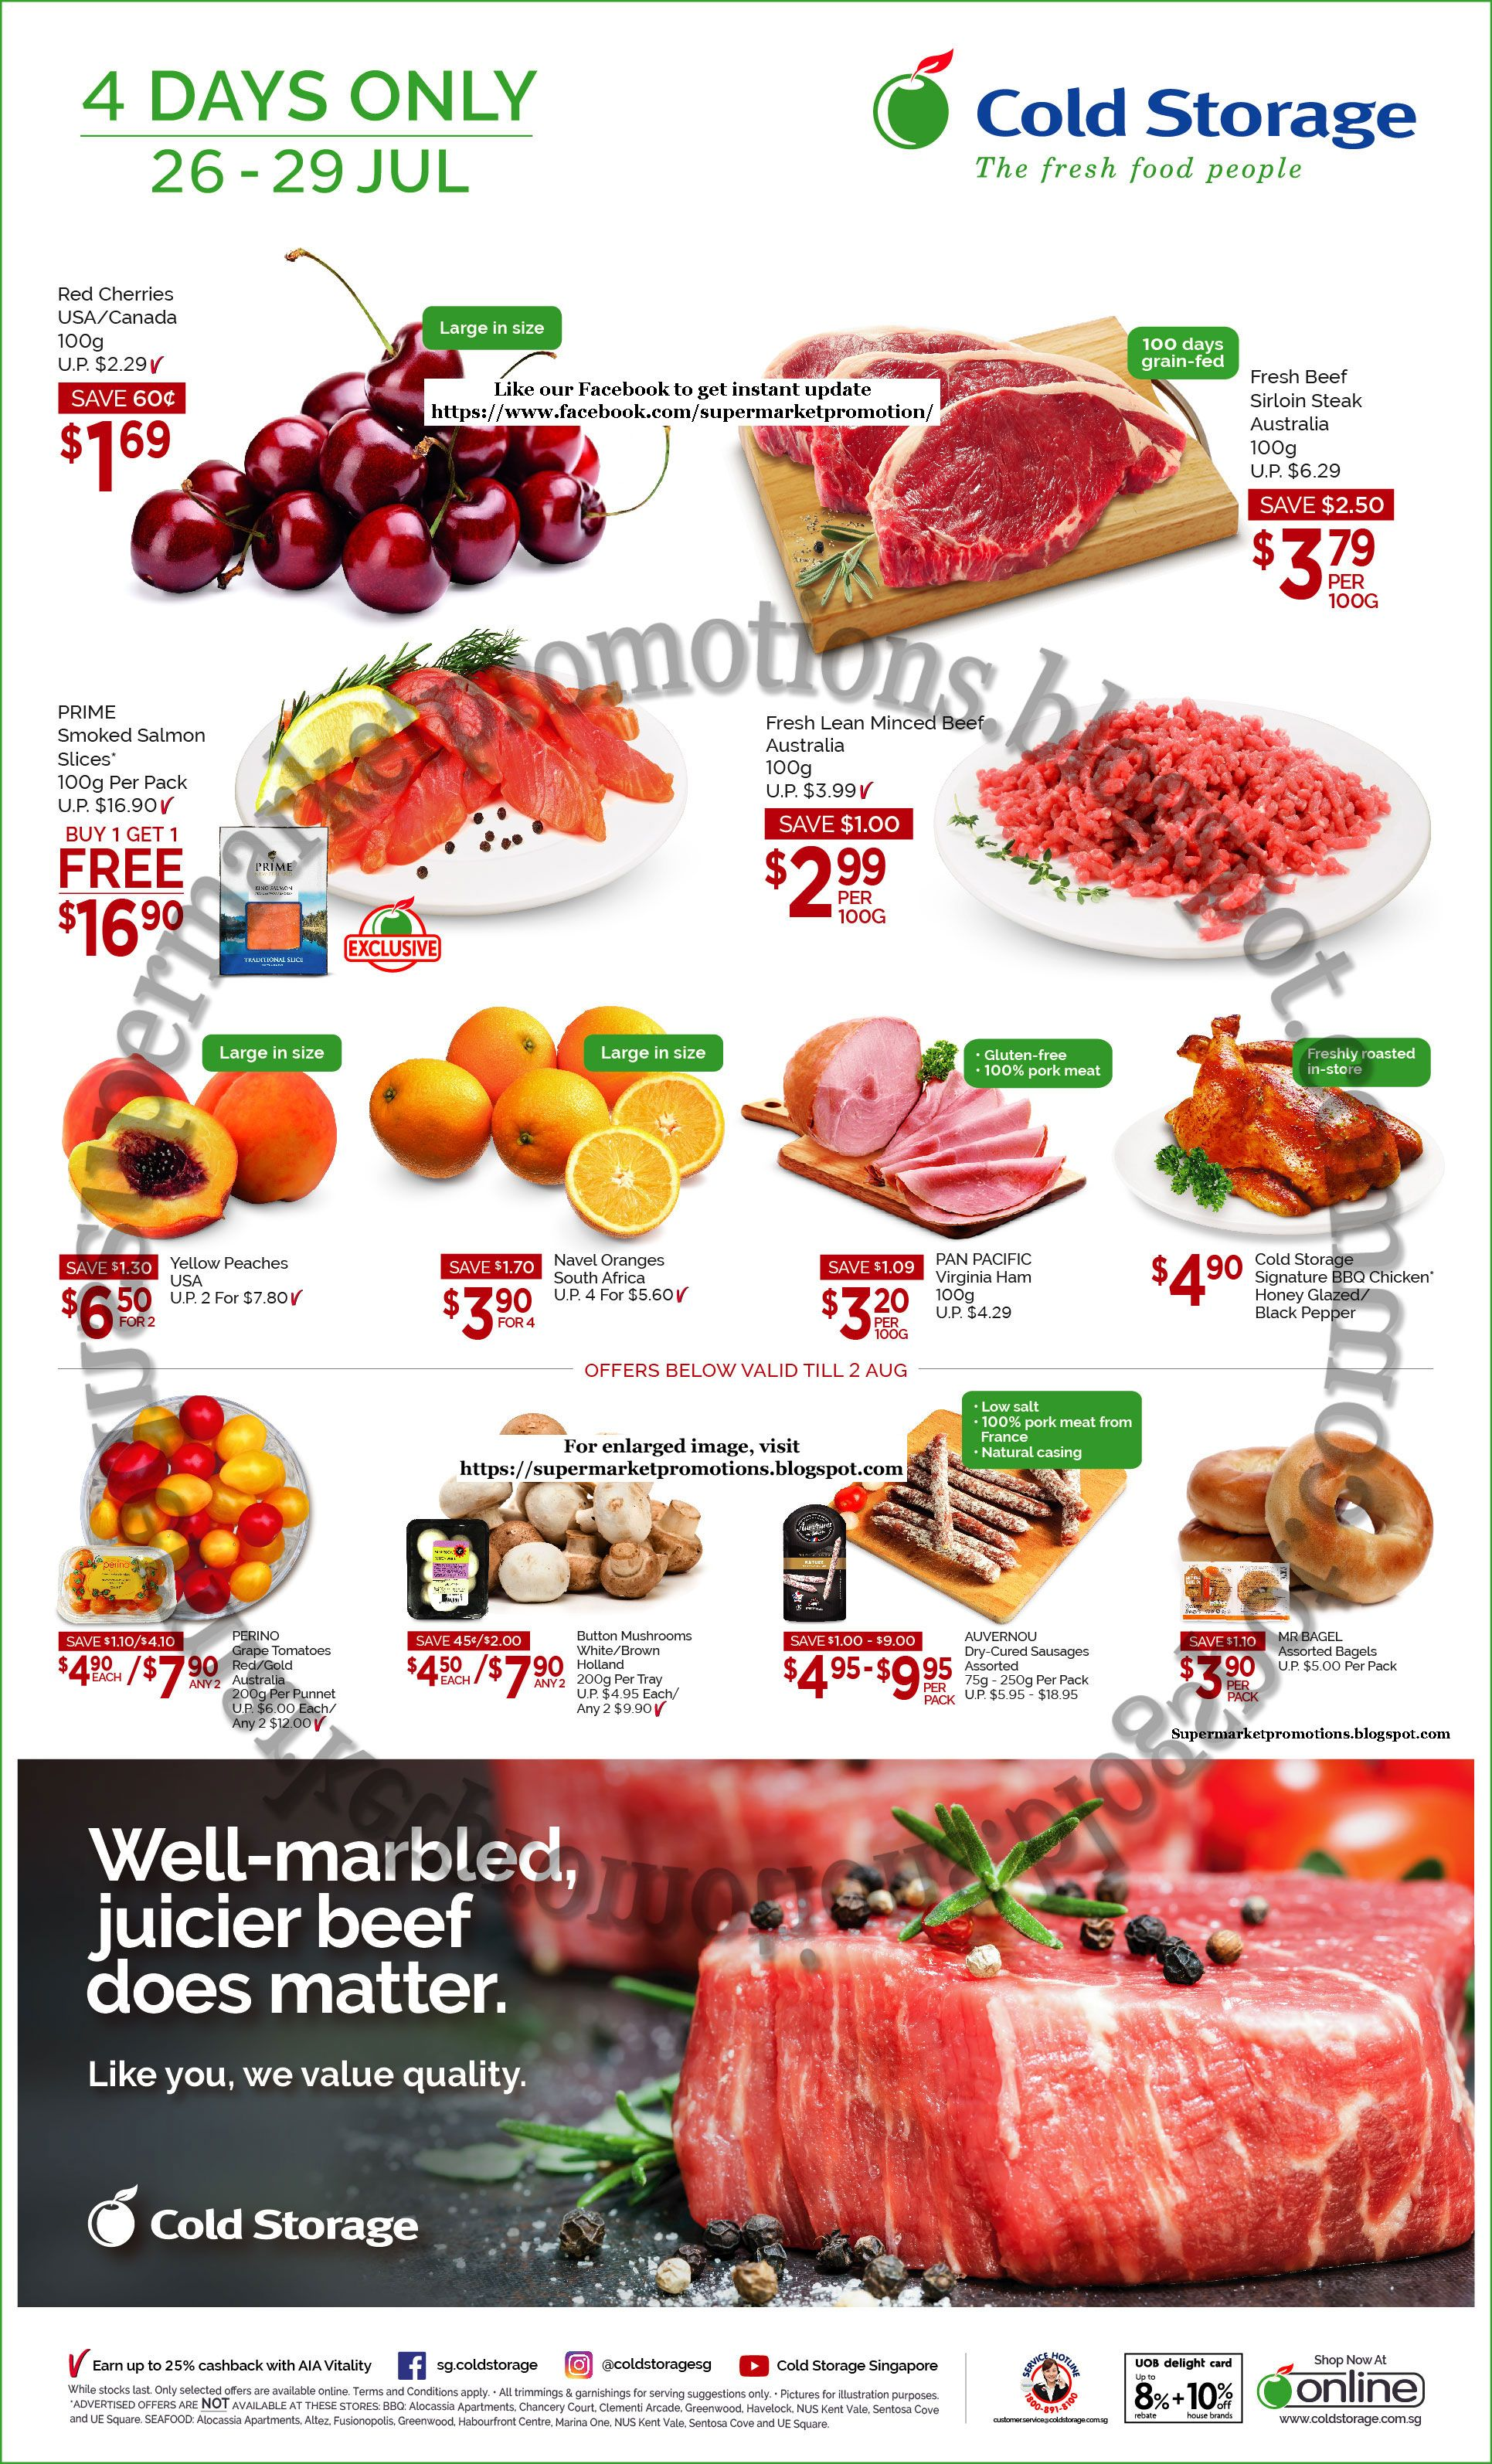 Cold Storage supermarket promotion Cold Storage 4 Days Only 26 - 29 July 2018 Red cherries  sc 1 st  Pinterest & Cold Storage supermarket promotion Cold Storage 4 Days Only 26 - 29 ...